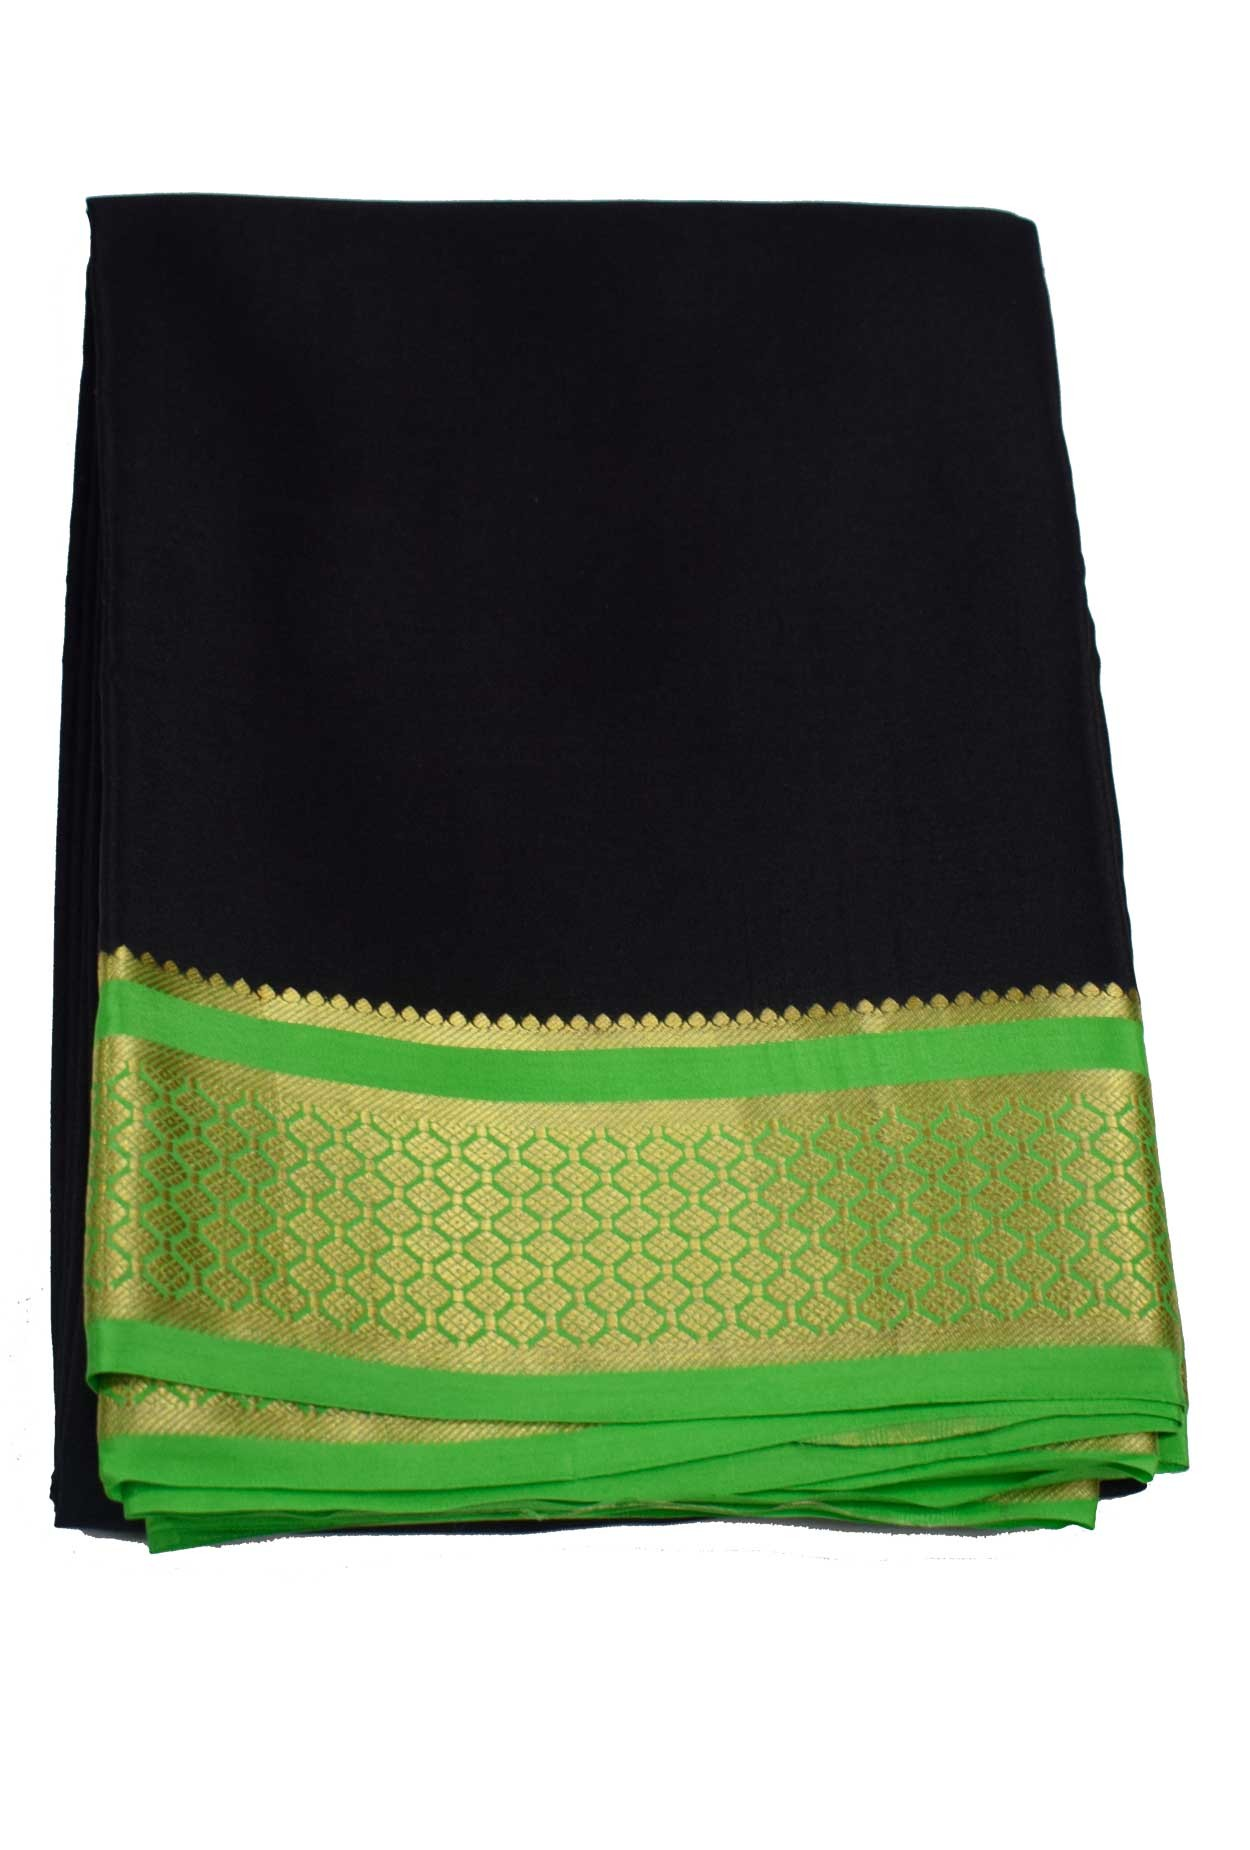 100% Pure Crape Mysore Traditional Silk Sarees SC-66-BLACK-GREEN